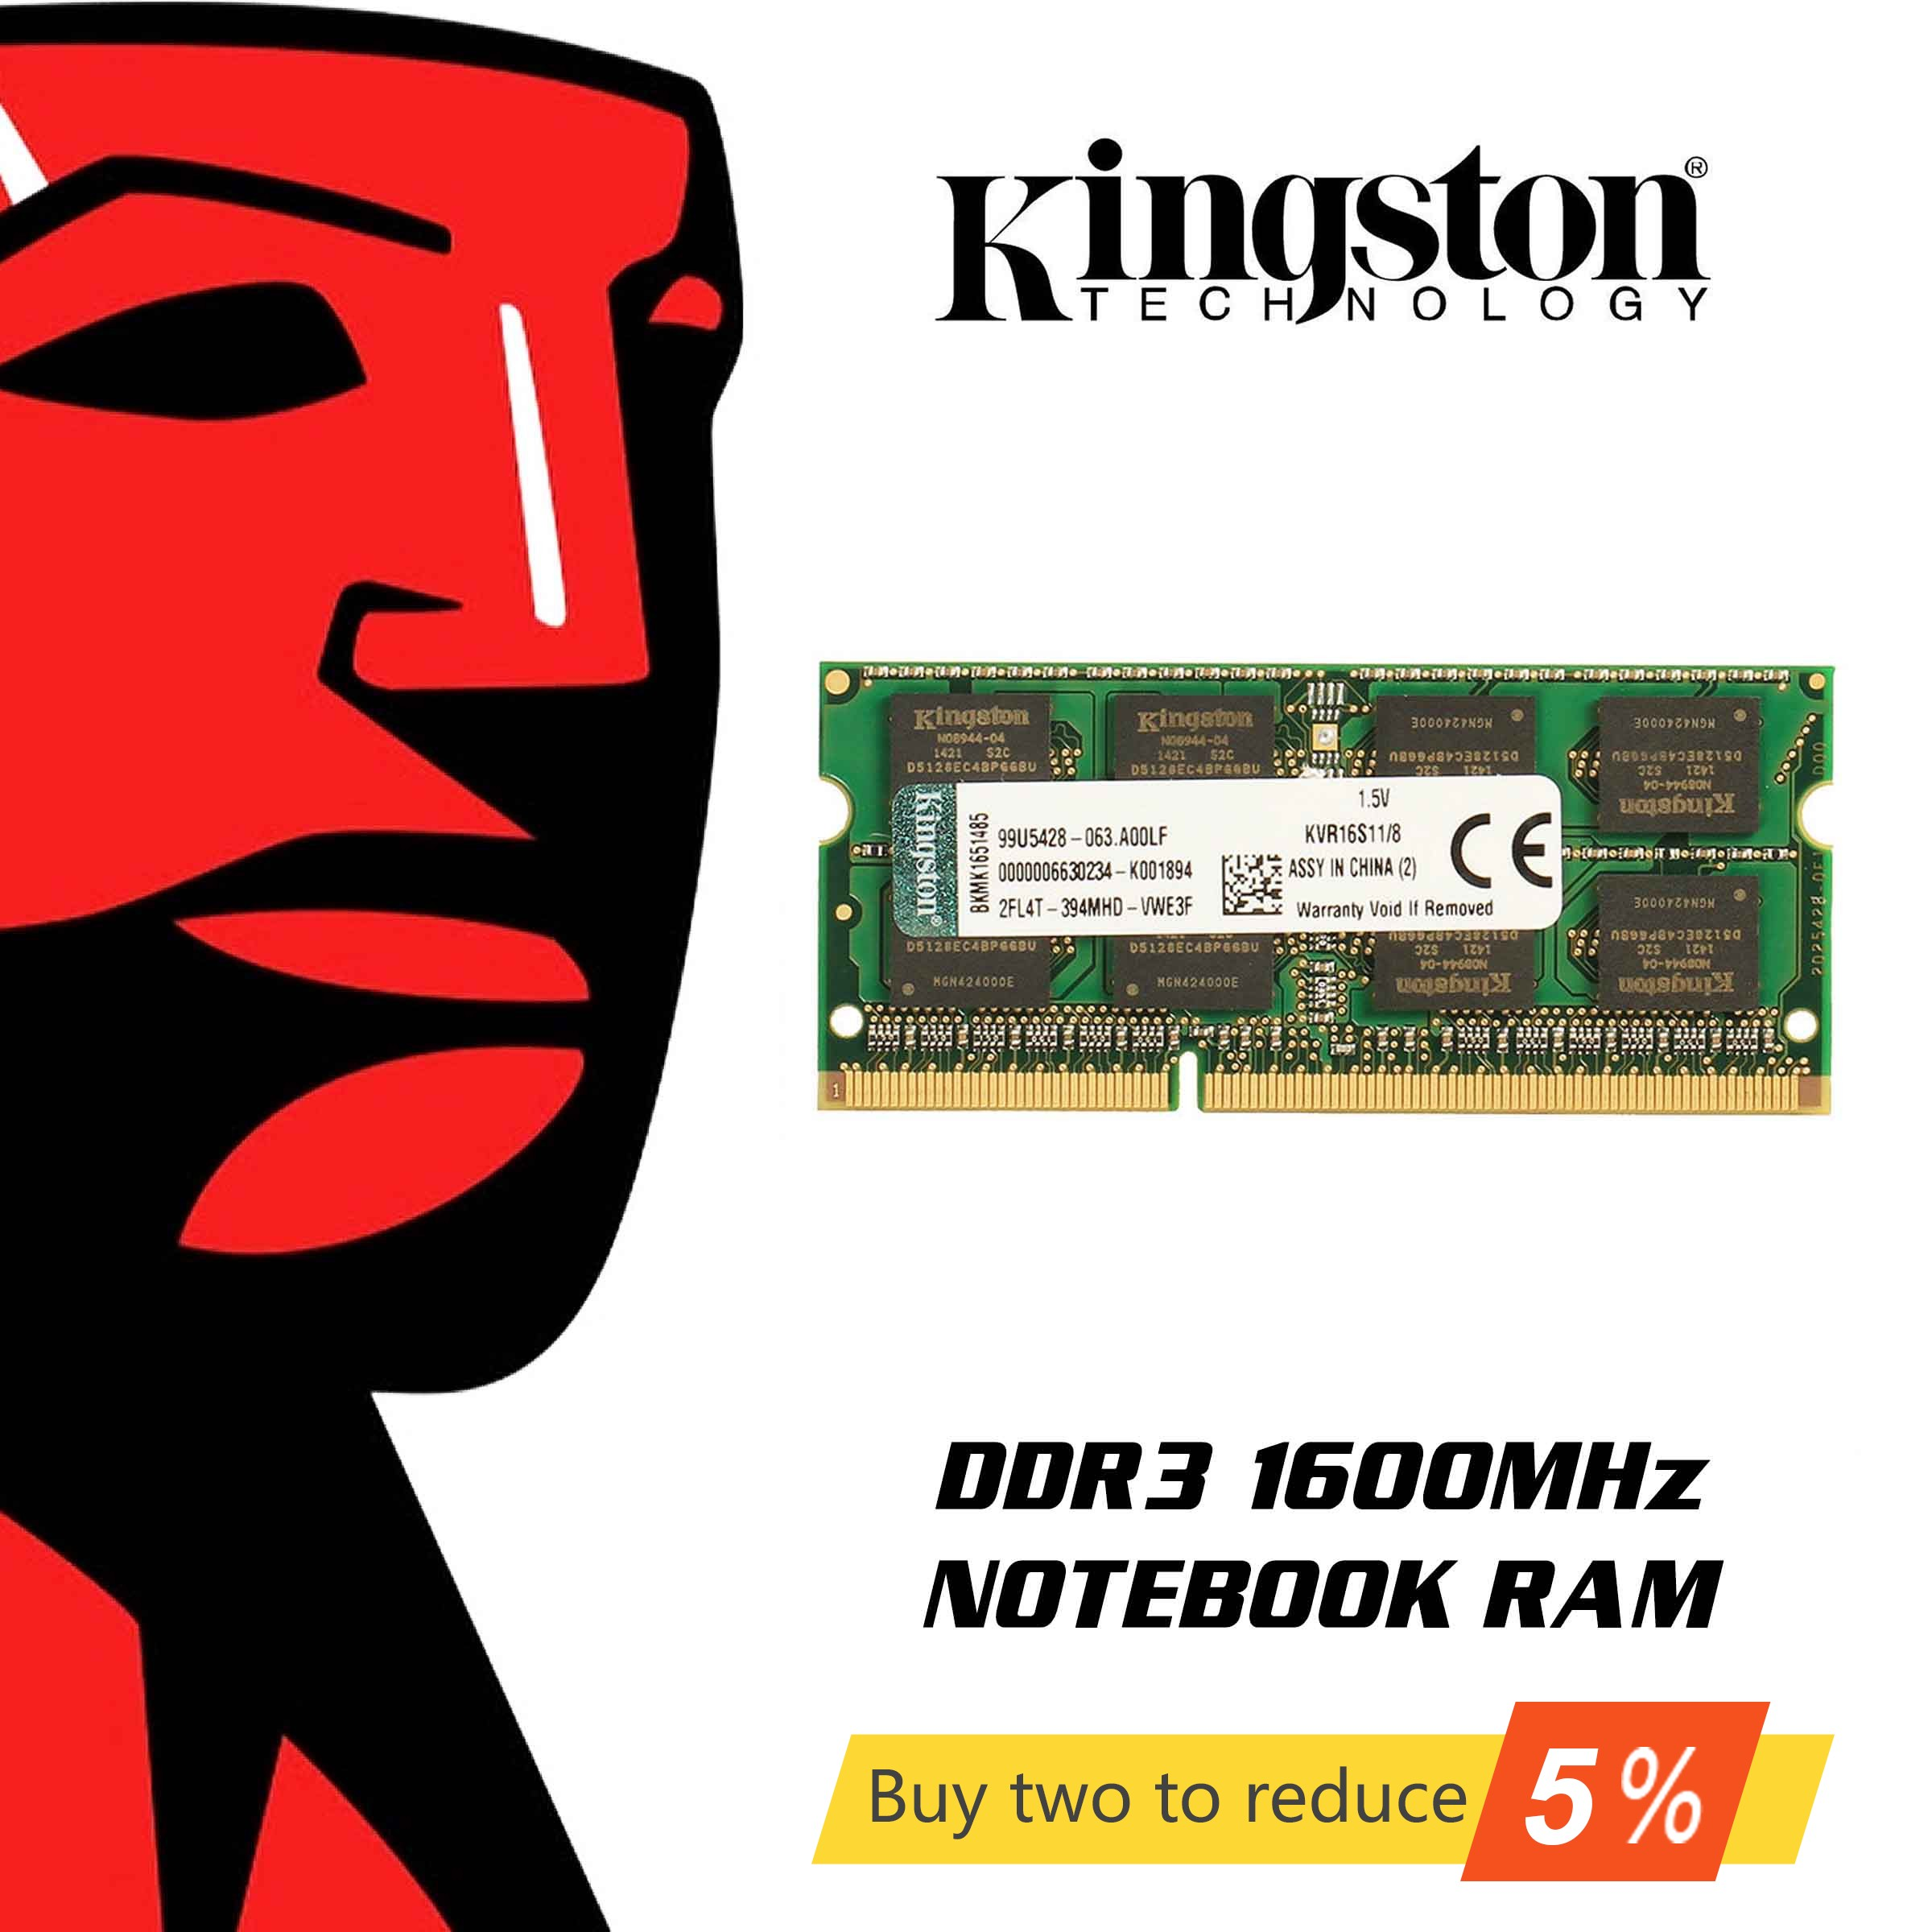 Kingston RAMS Laptop memory DDR3 1600MHZ 1.35V 4GB/8GB image